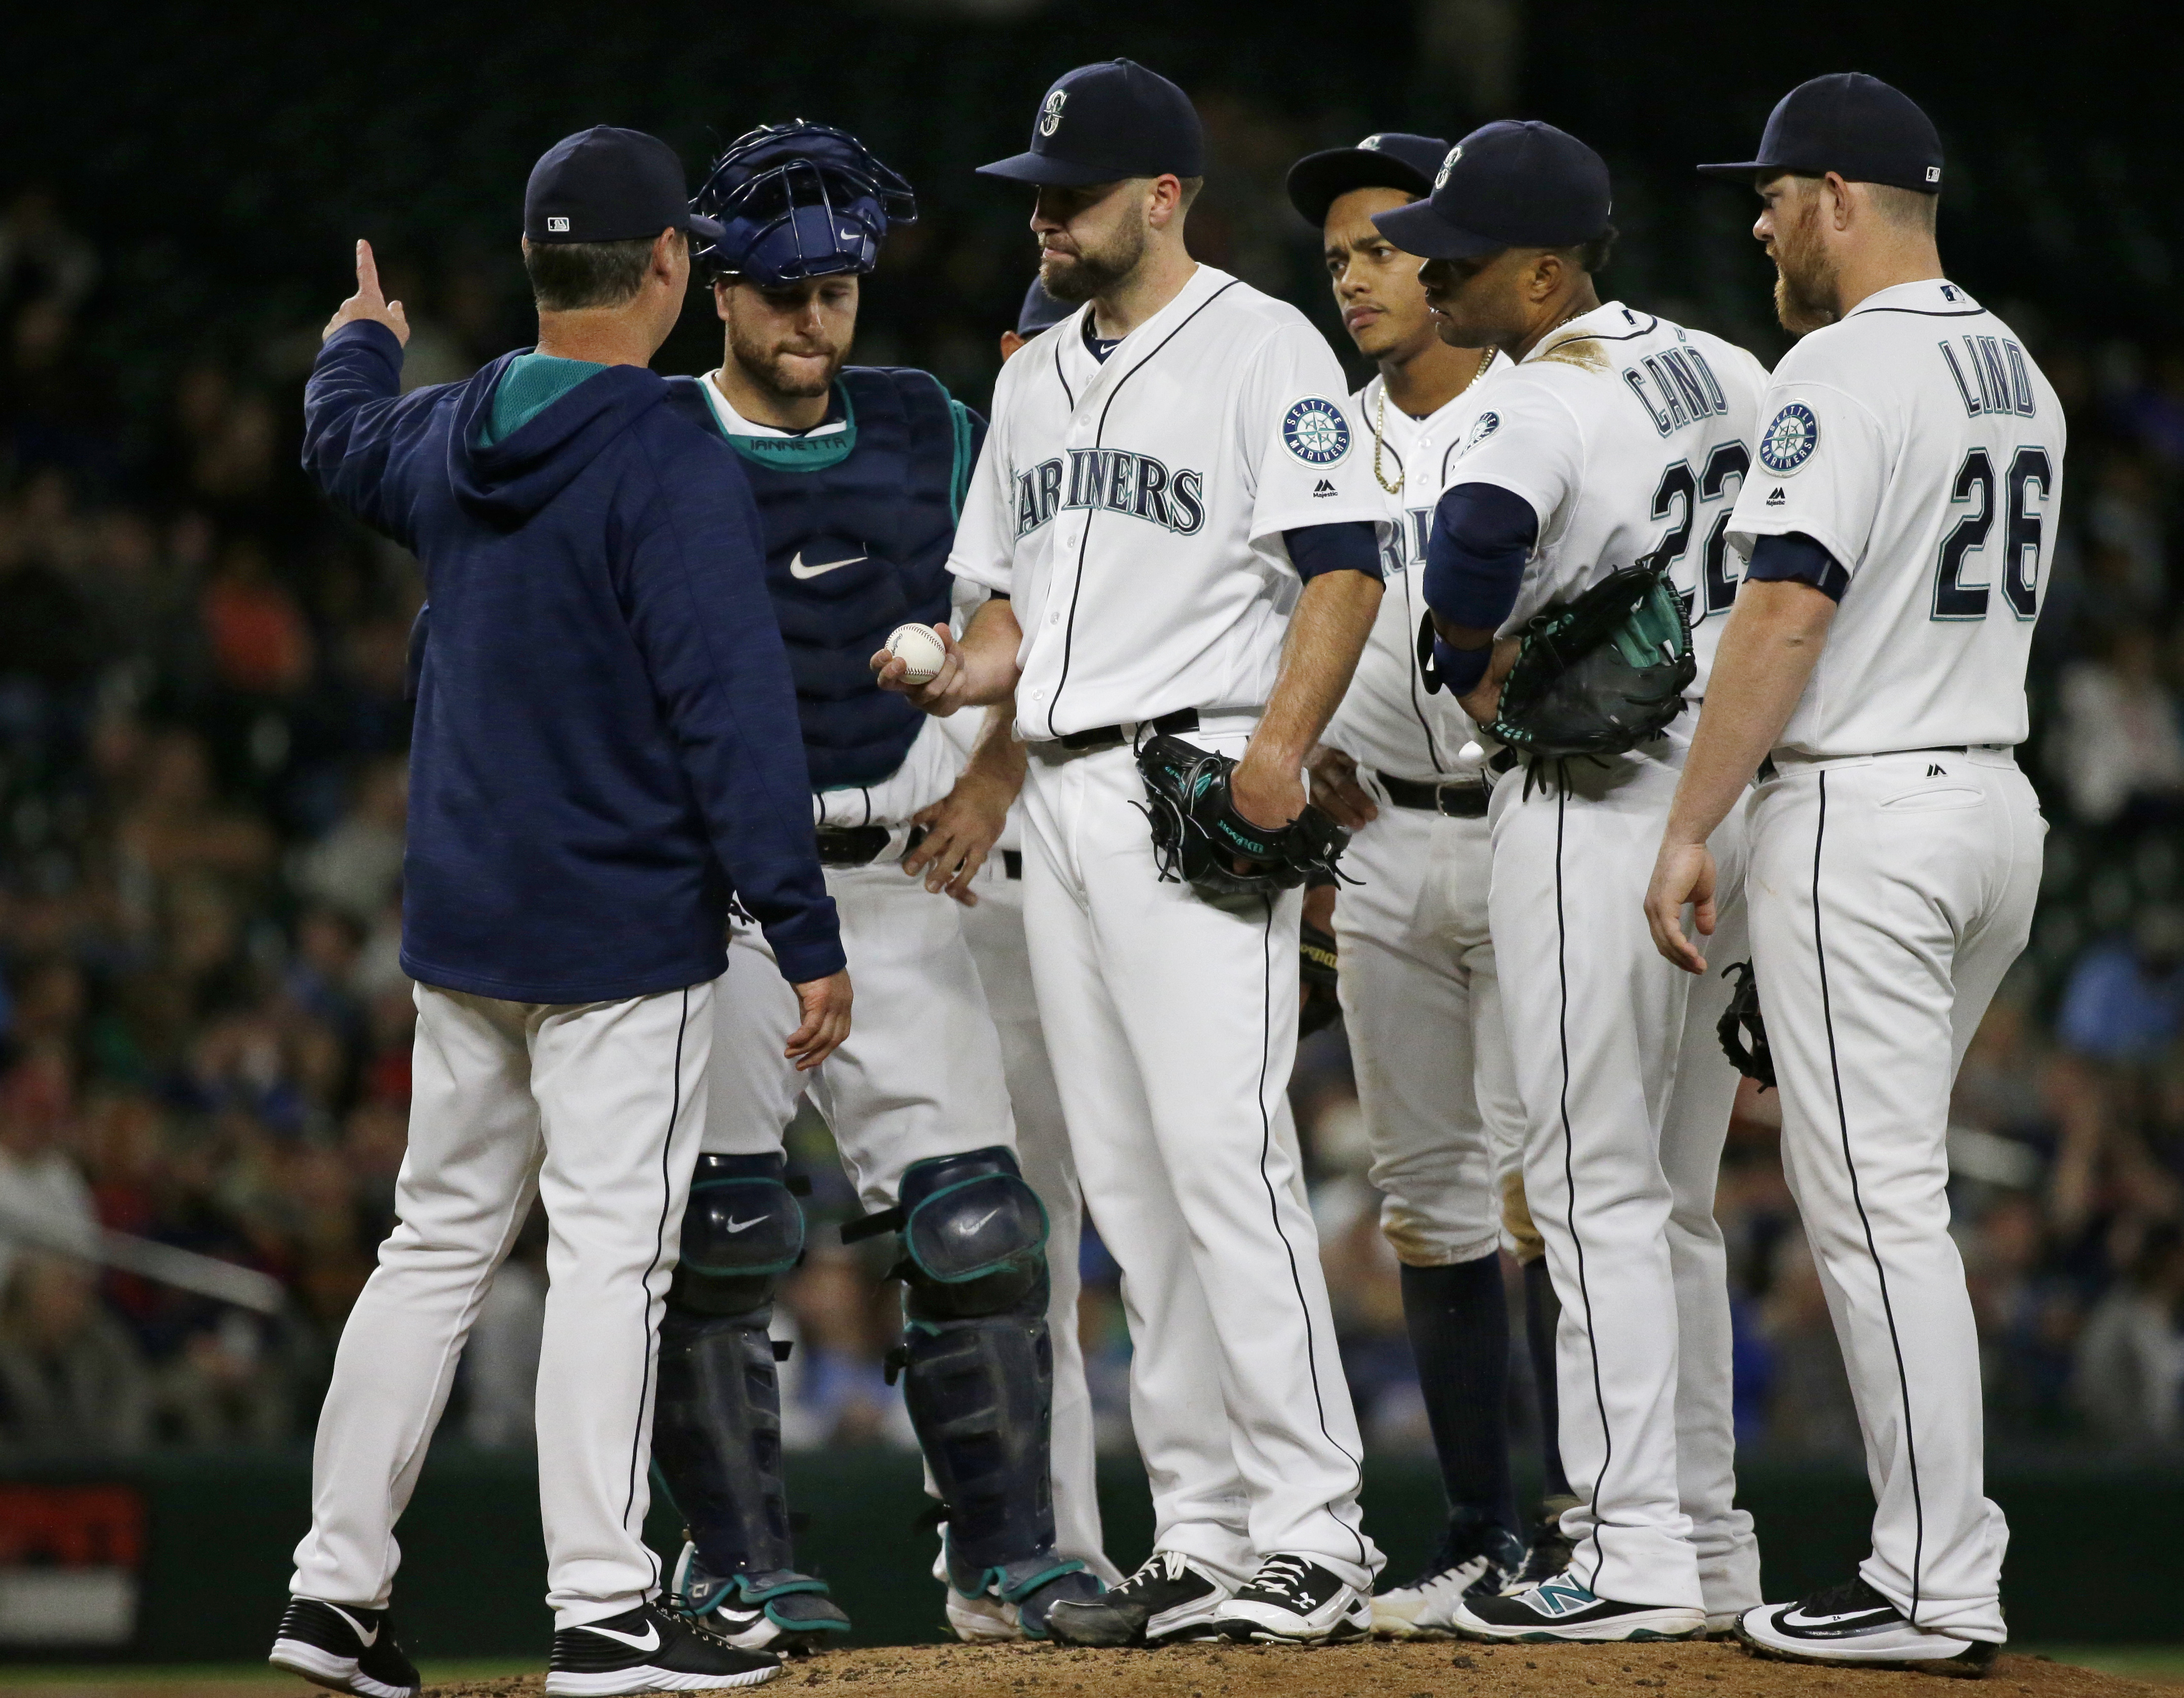 Seattle Mariners manager Scott Servais, left, signals for left-handed pitcher Mike Montgomery to come into the game and relieve starting pitcher Nathan Karns, center, during the fifth inning of a baseball game against the Cleveland Indians, Thursday, June